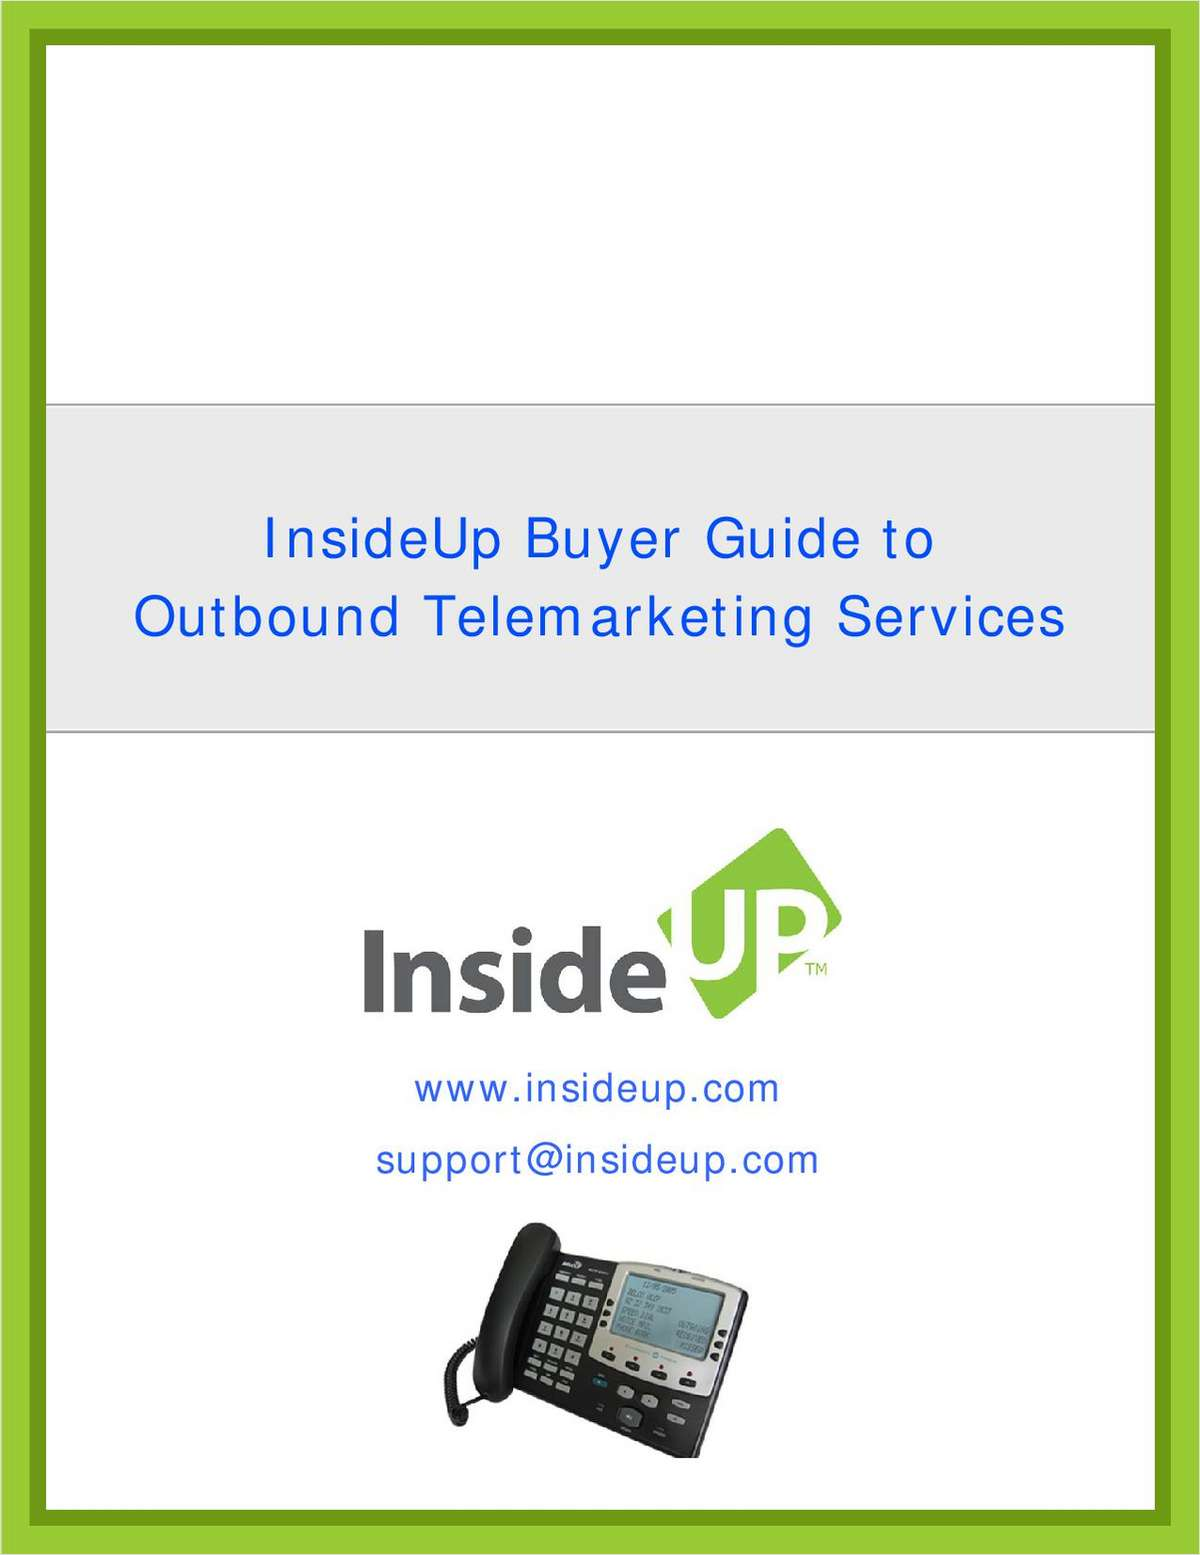 How To Use Outbound Telemarketing Services To Increase Your Sales